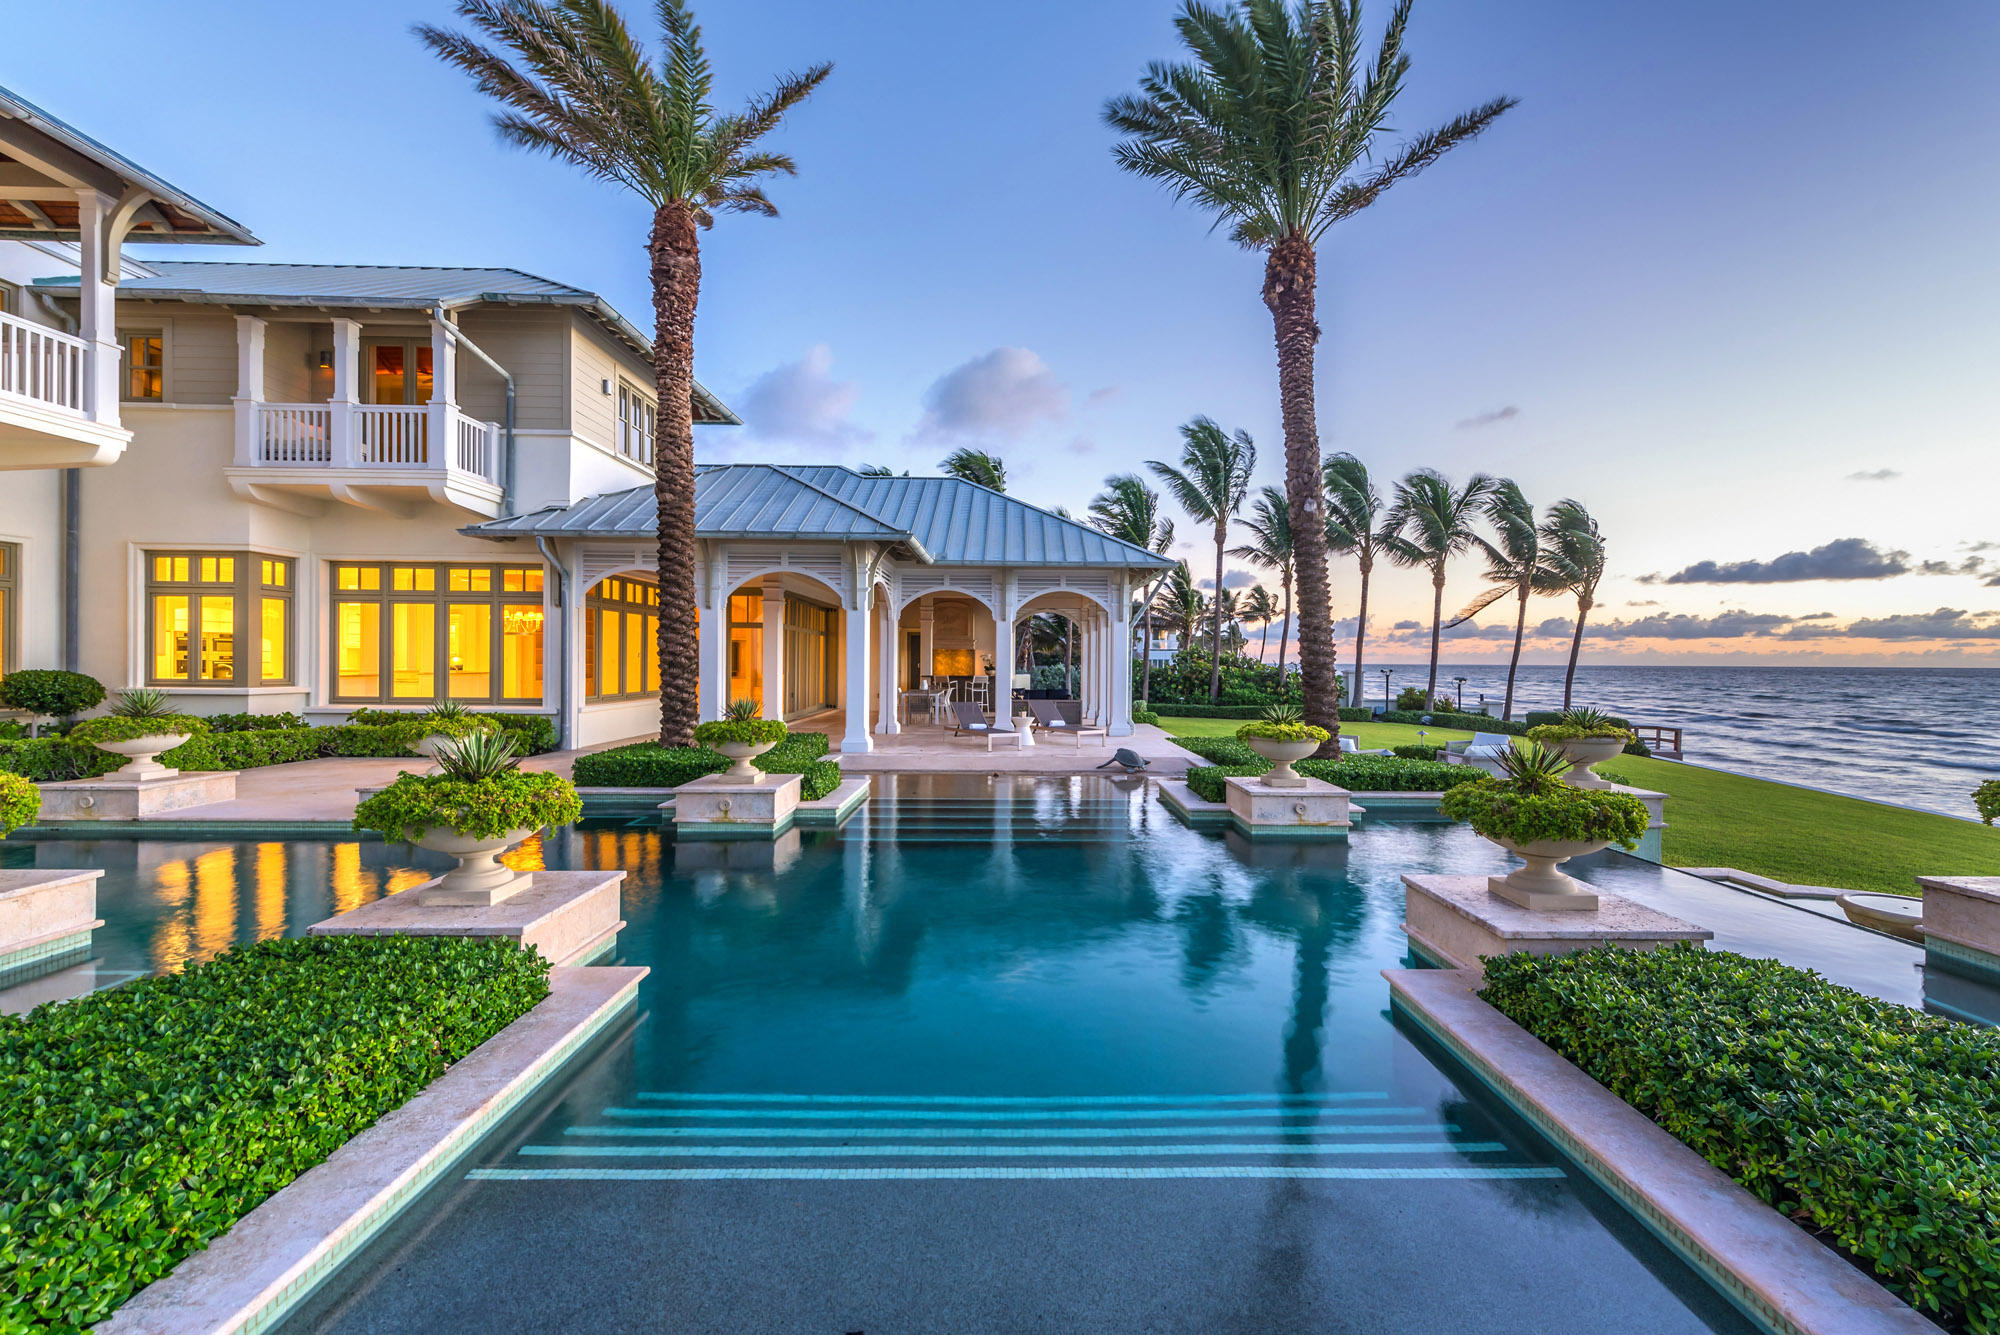 New Home for sale at 1500 Ocean Boulevard in Manalapan